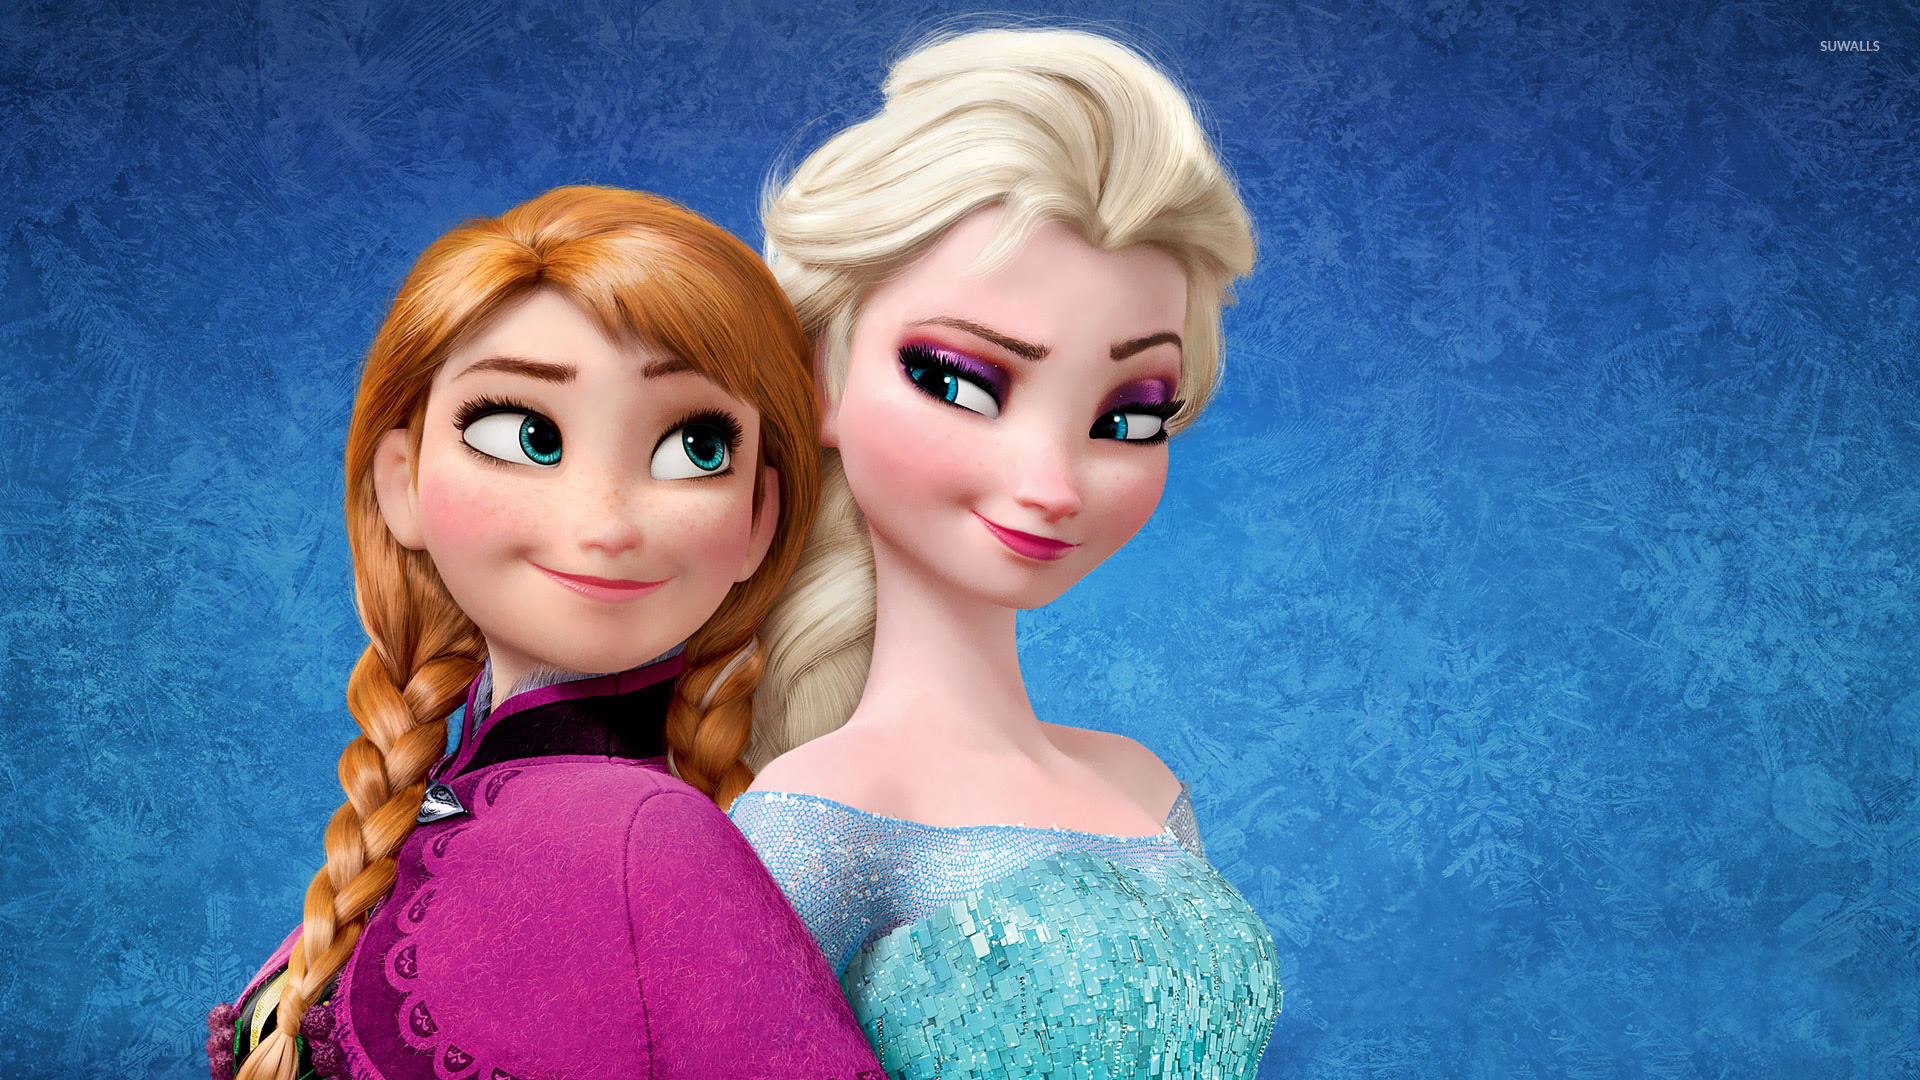 Elsa And Anna Frozen 1920 1080 Hd Wallpapers Hd Backgrounds